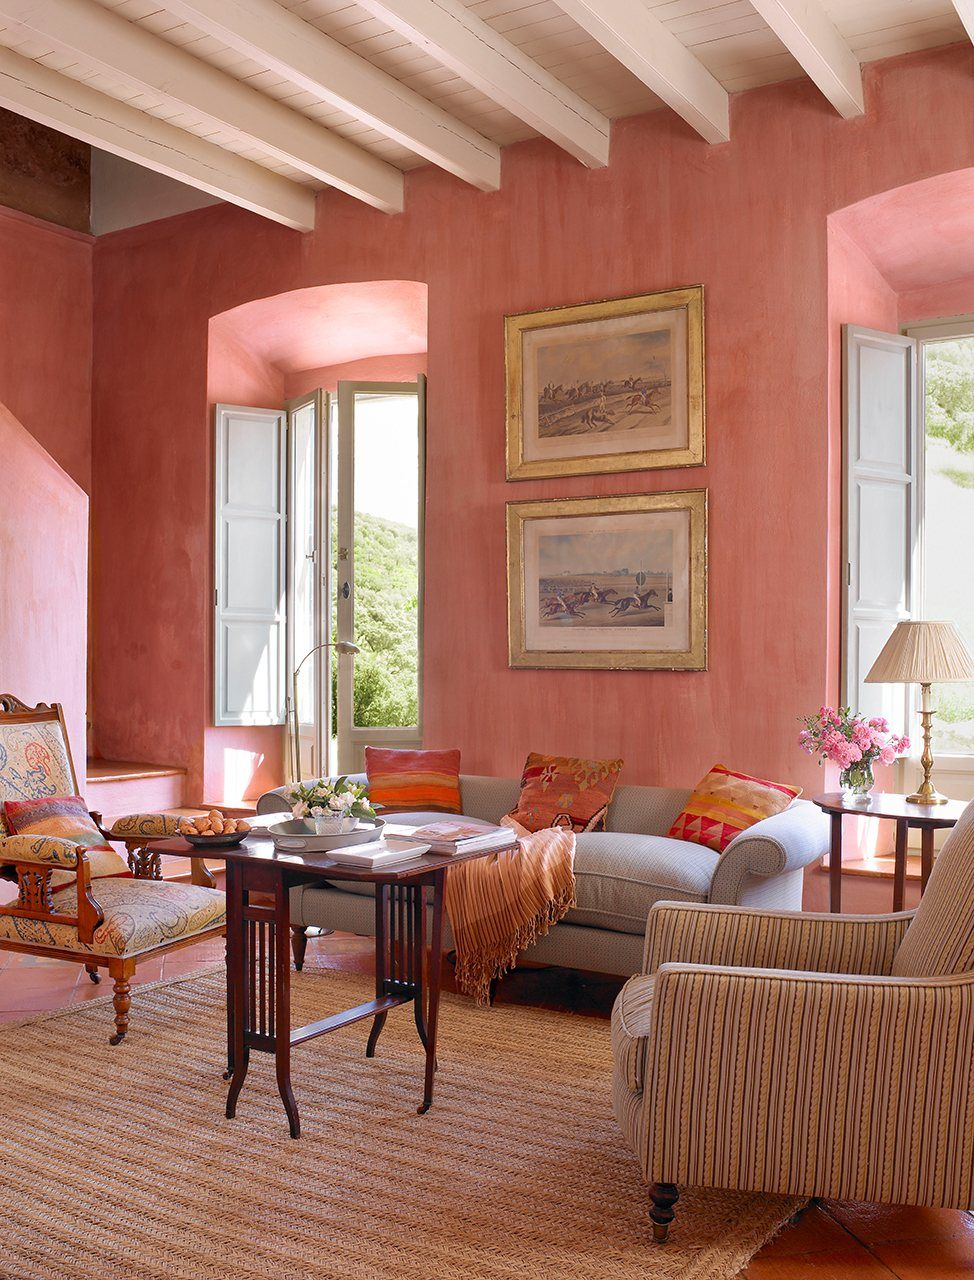 Coral Painted Rooms These Walls Have Been Painted In Rose Salmon Tones With A Lime